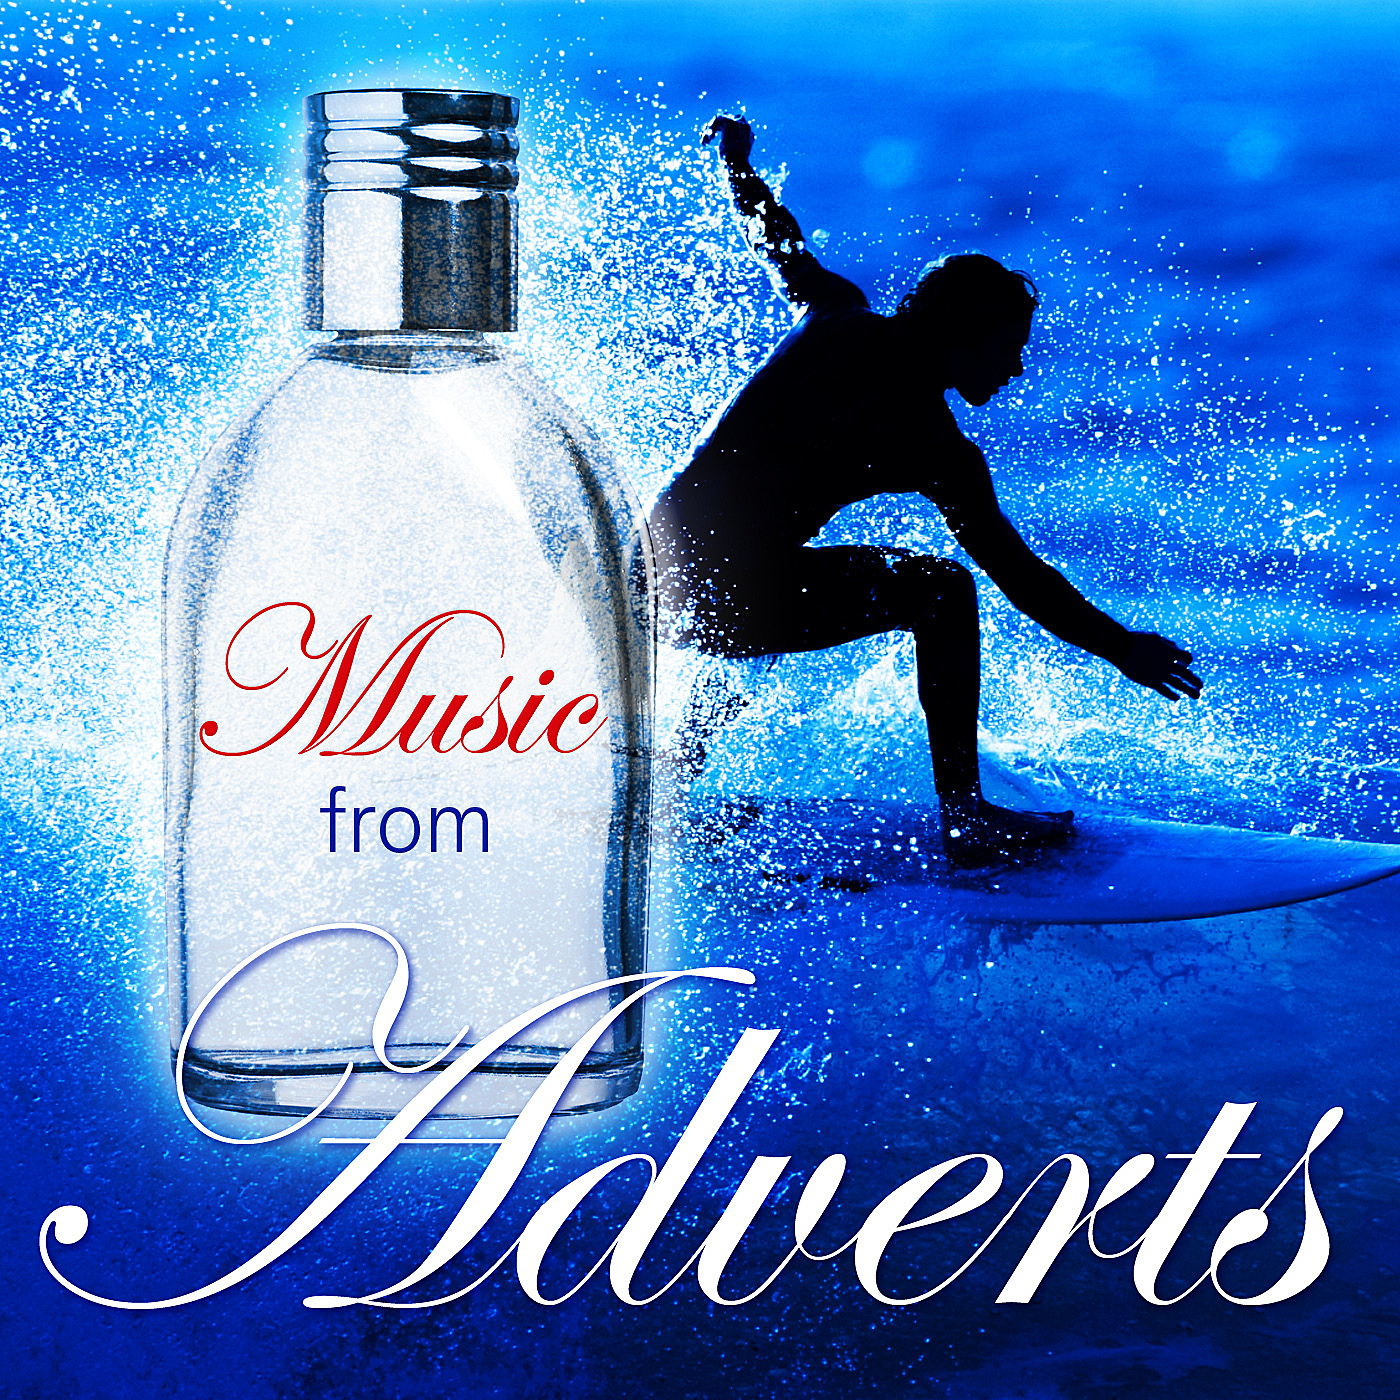 Music from Adverts